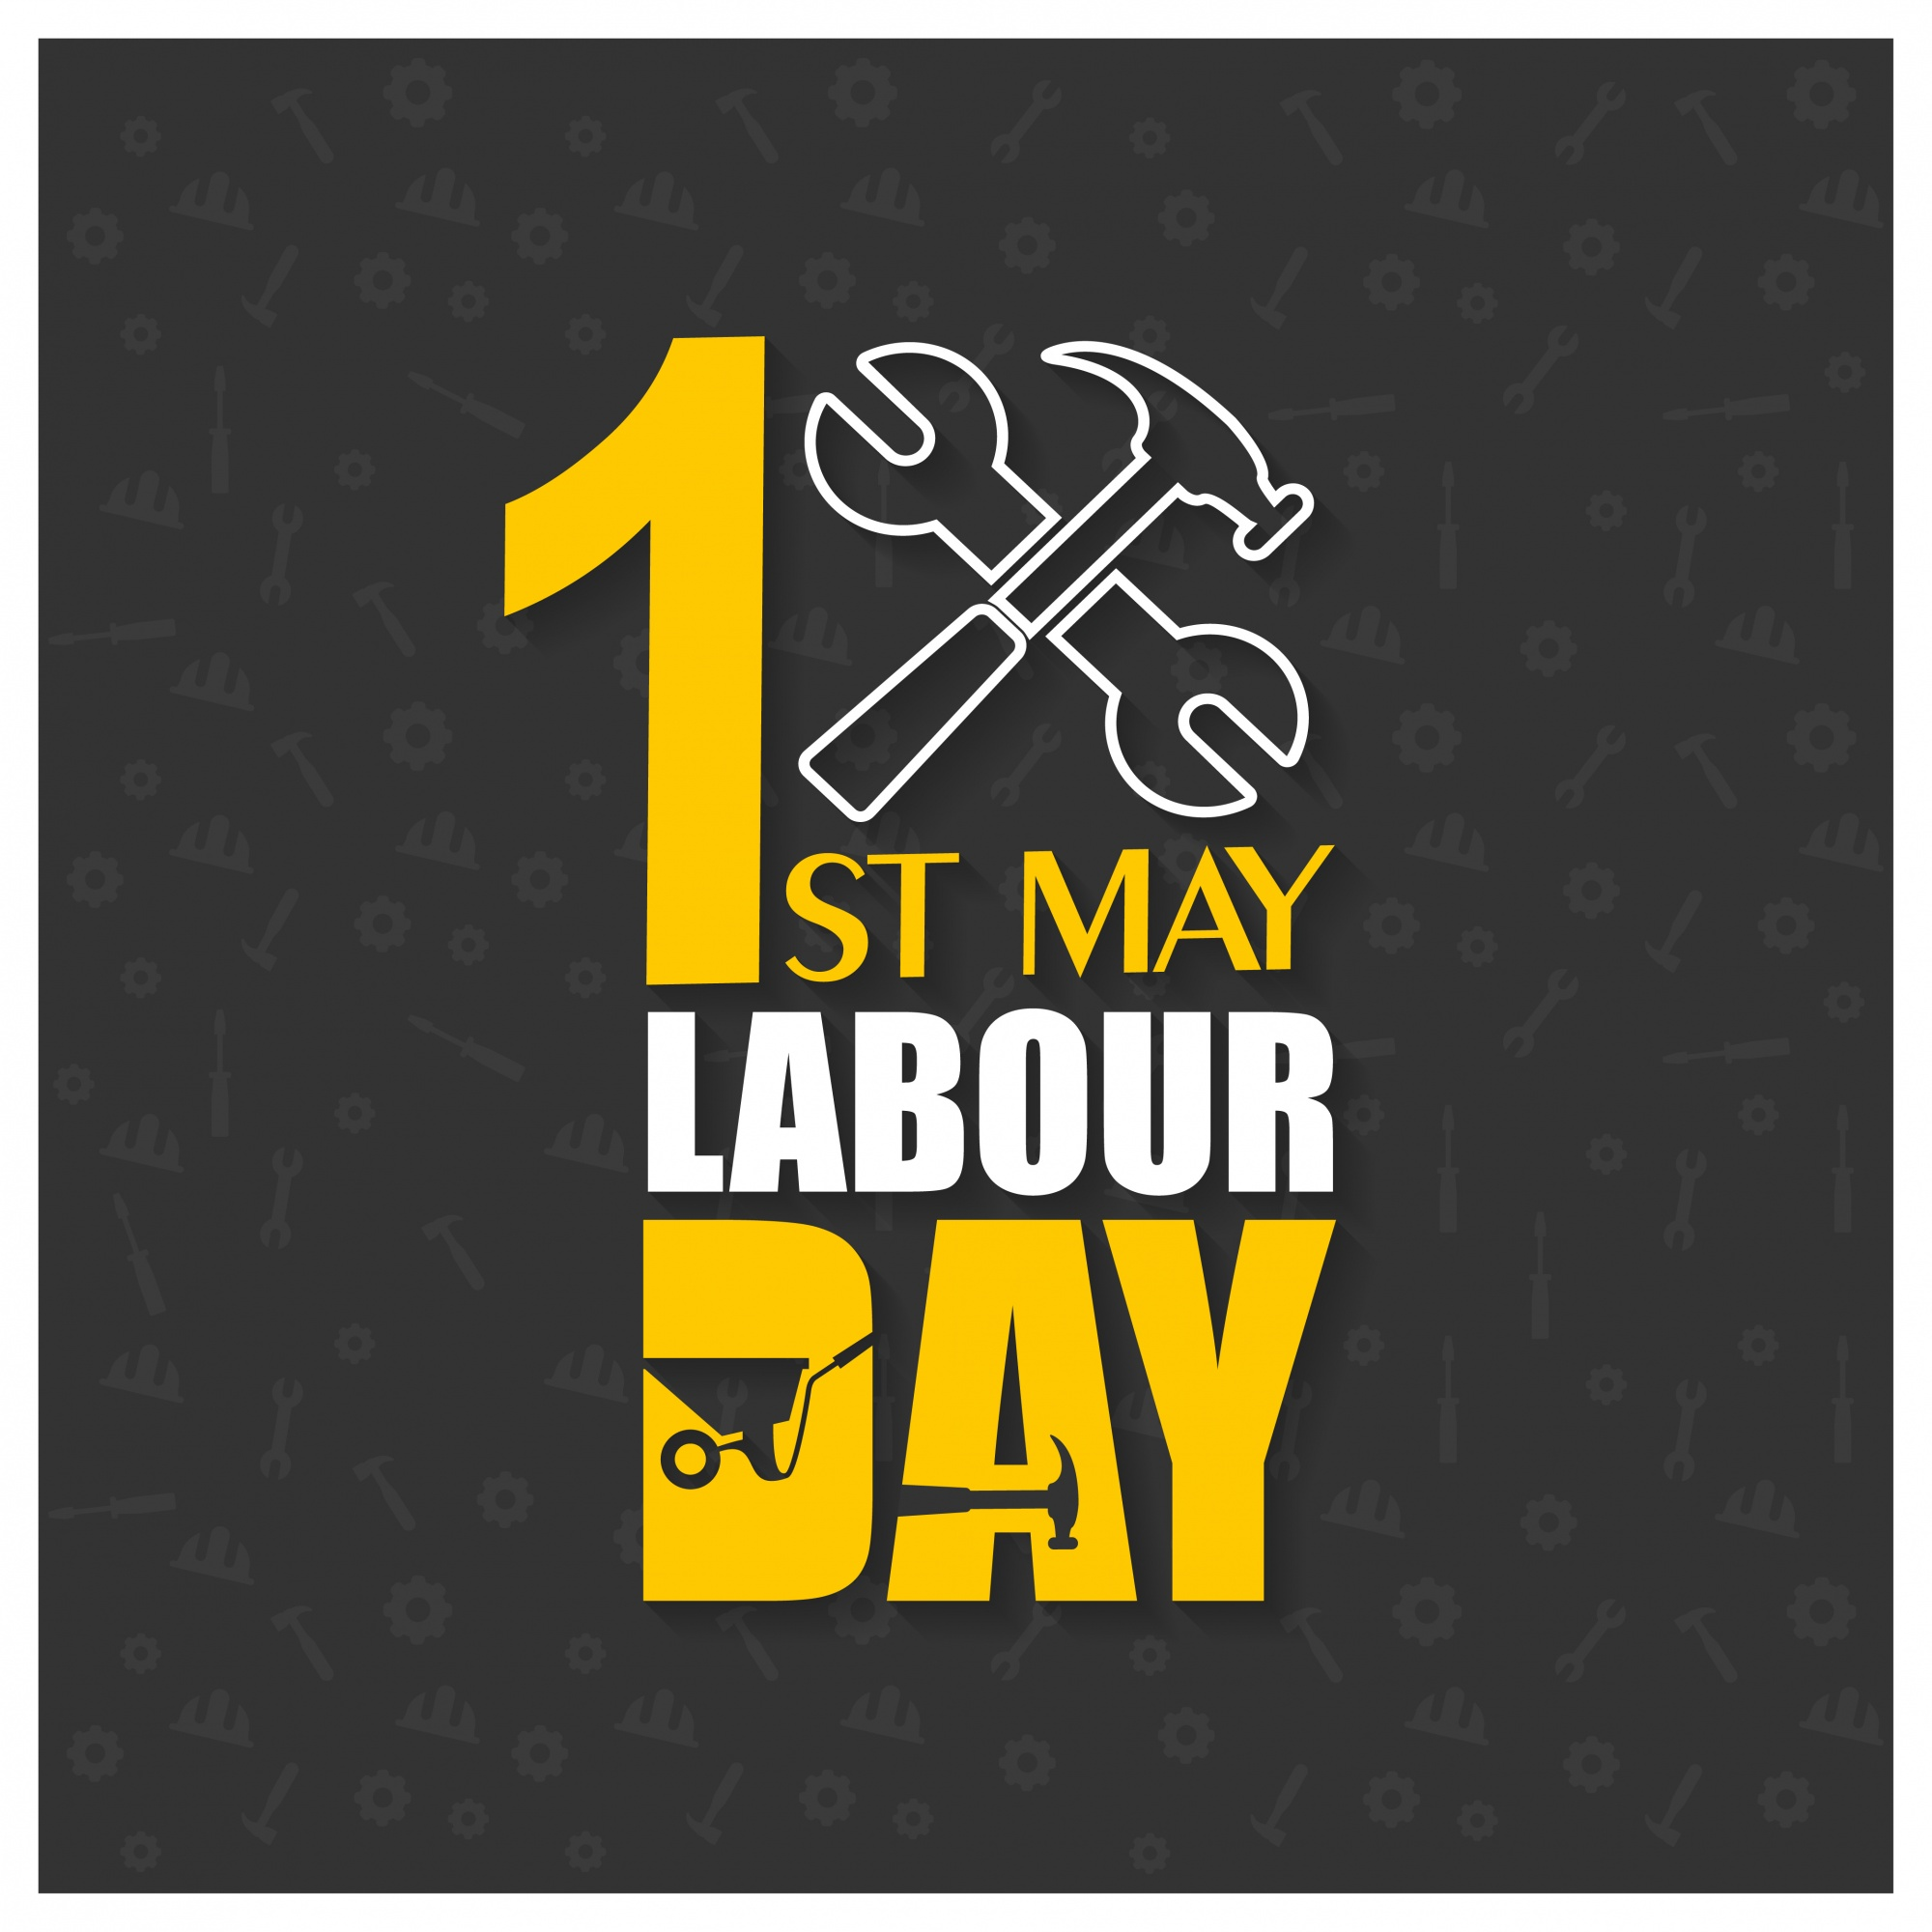 1st of may labour day background